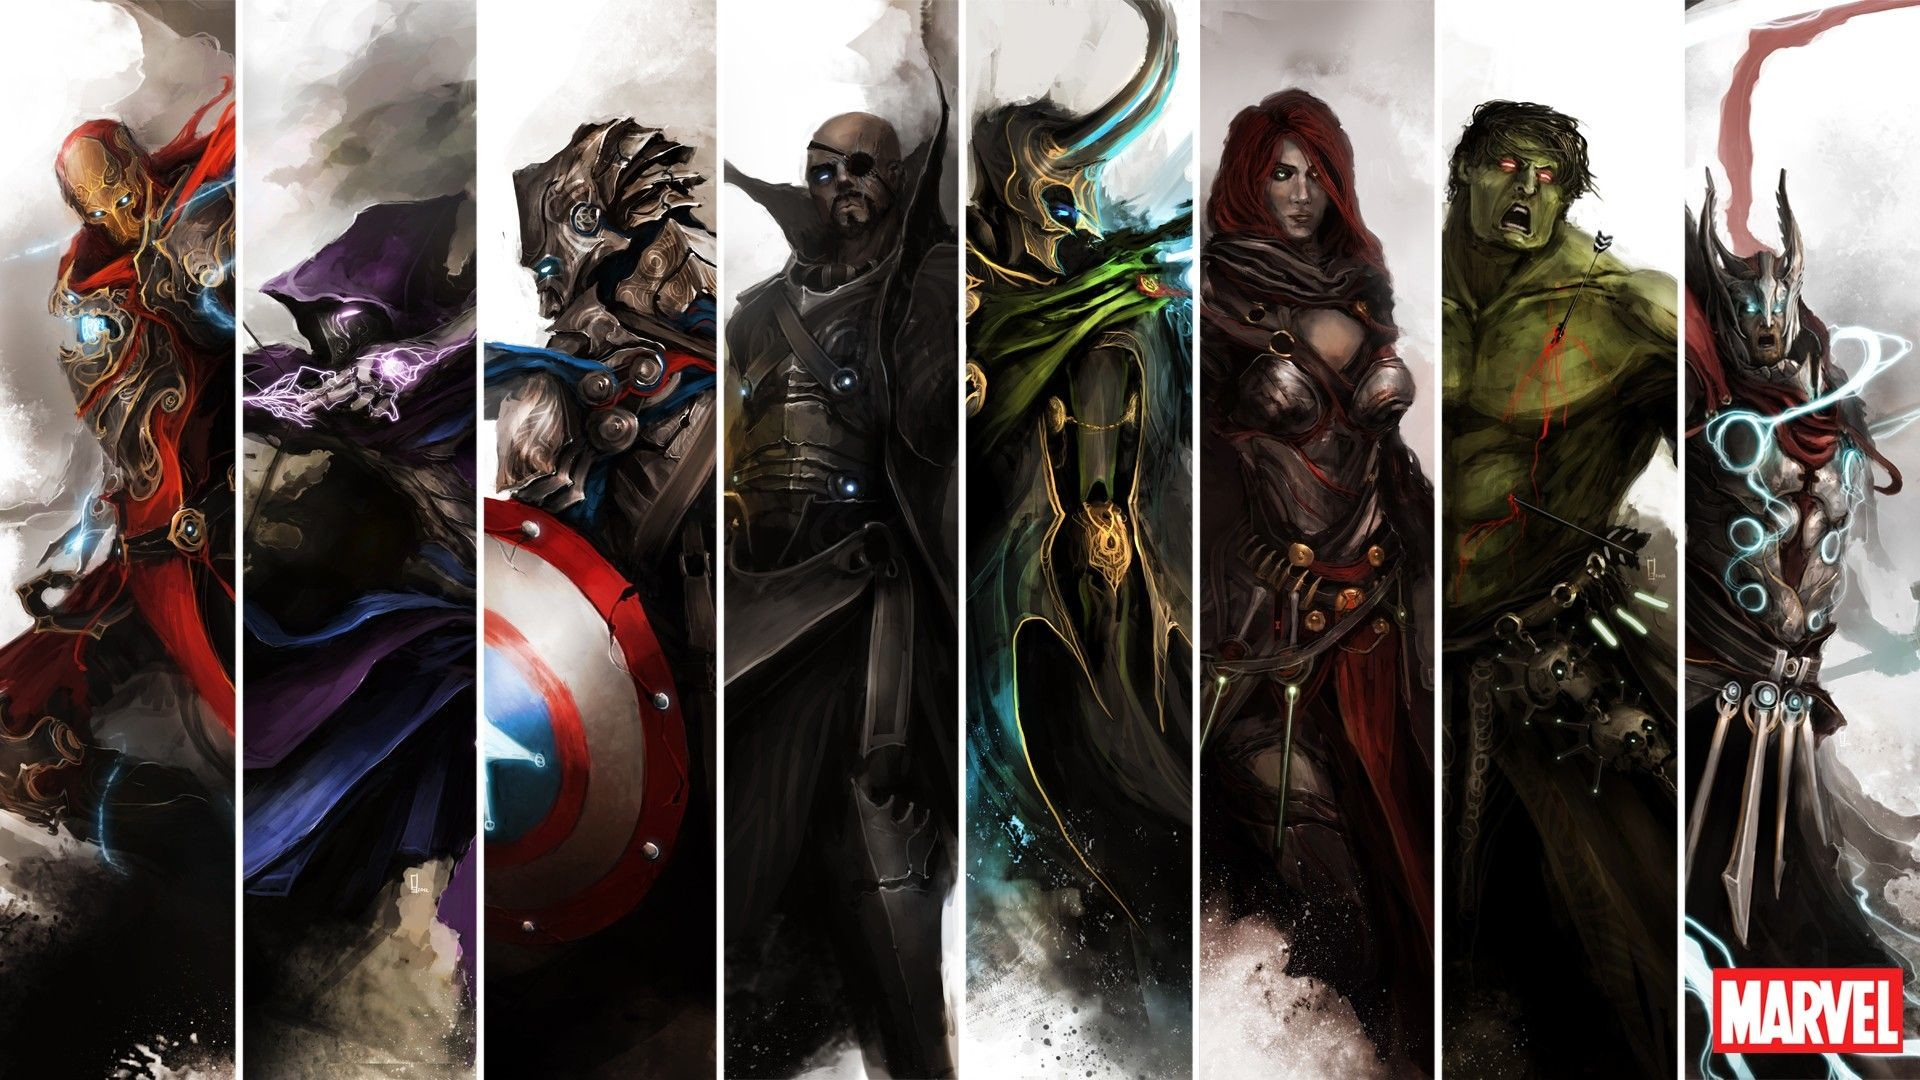 1920x1080 ... Marvel Hd Wallpapers 1080p 21 Wallpapers. Download